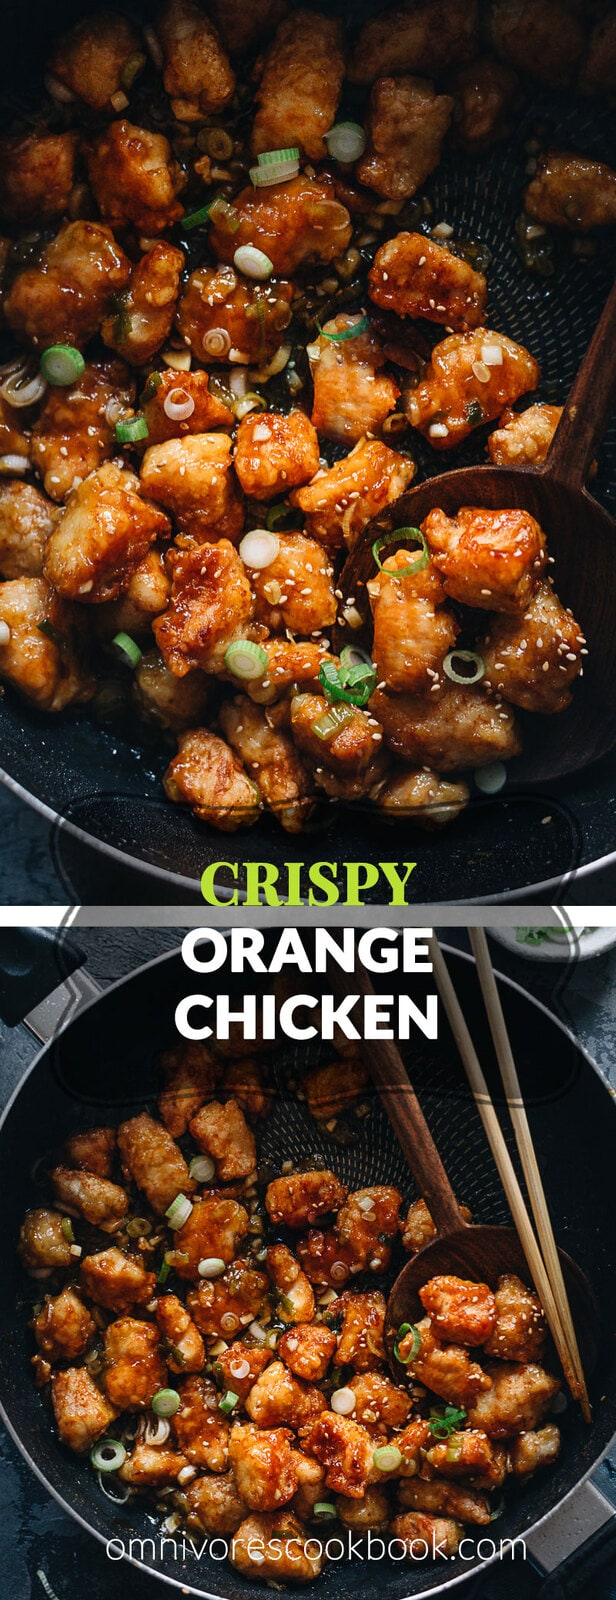 Chinese Orange Chicken (Crispy Chicken without Deep Frying) - This is the only recipe you need to make extra crispy chicken without deep-frying and a scrumptious orange sauce that's way better than takeout. {gluten-free}